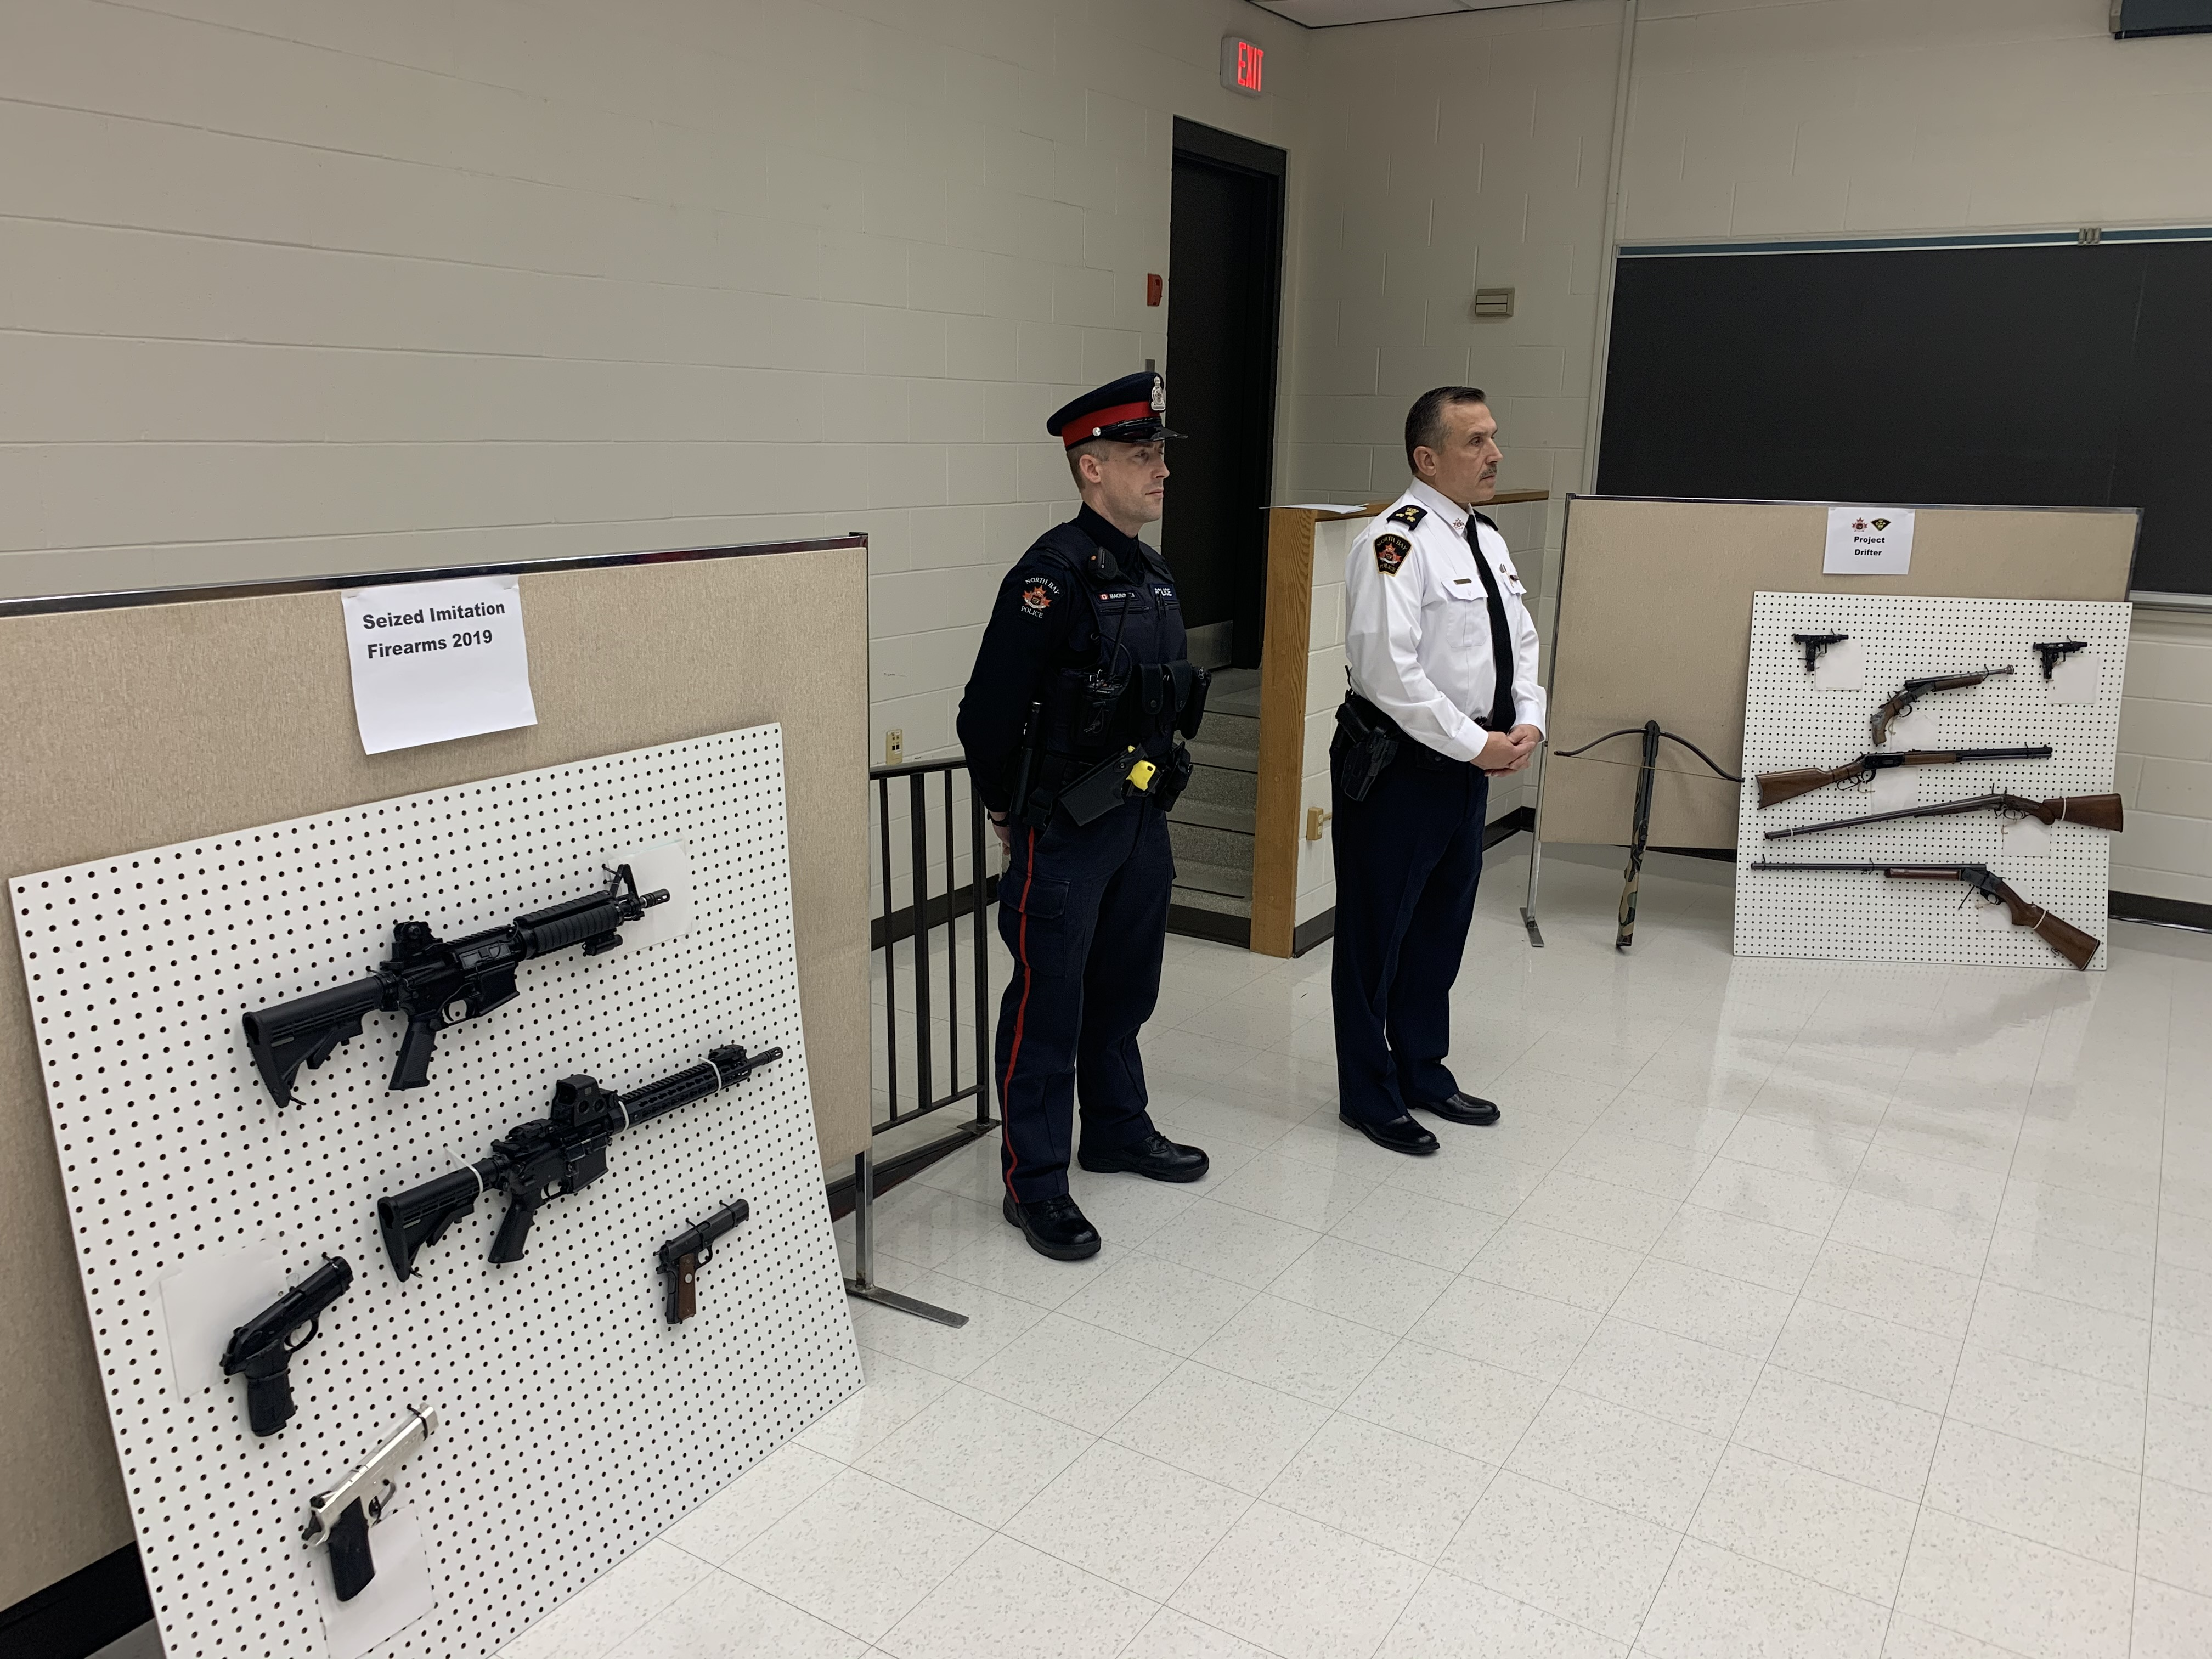 Fake firearms continue to be a worry for police